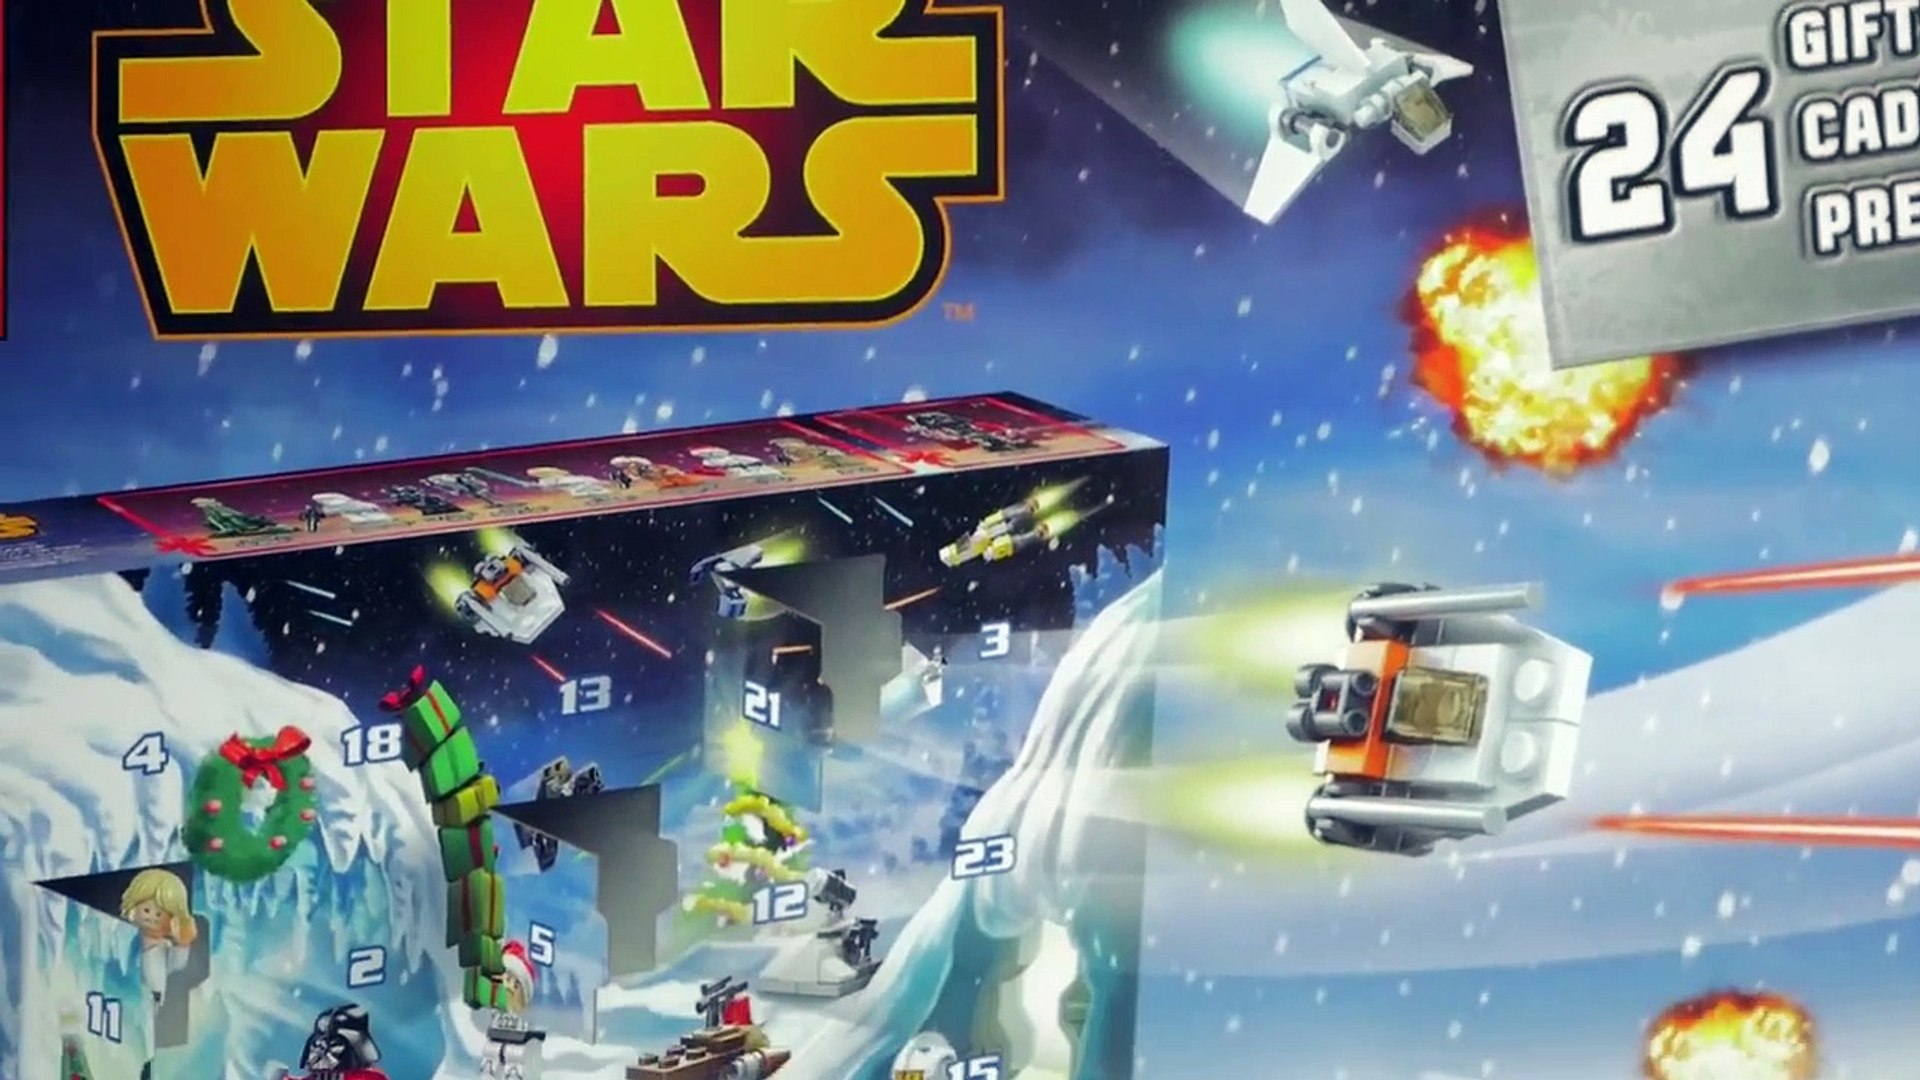 [LEGO STAR WARS] Calendrier de lAvent 2014 Lego Star Wars Star Wars Advent Calendar